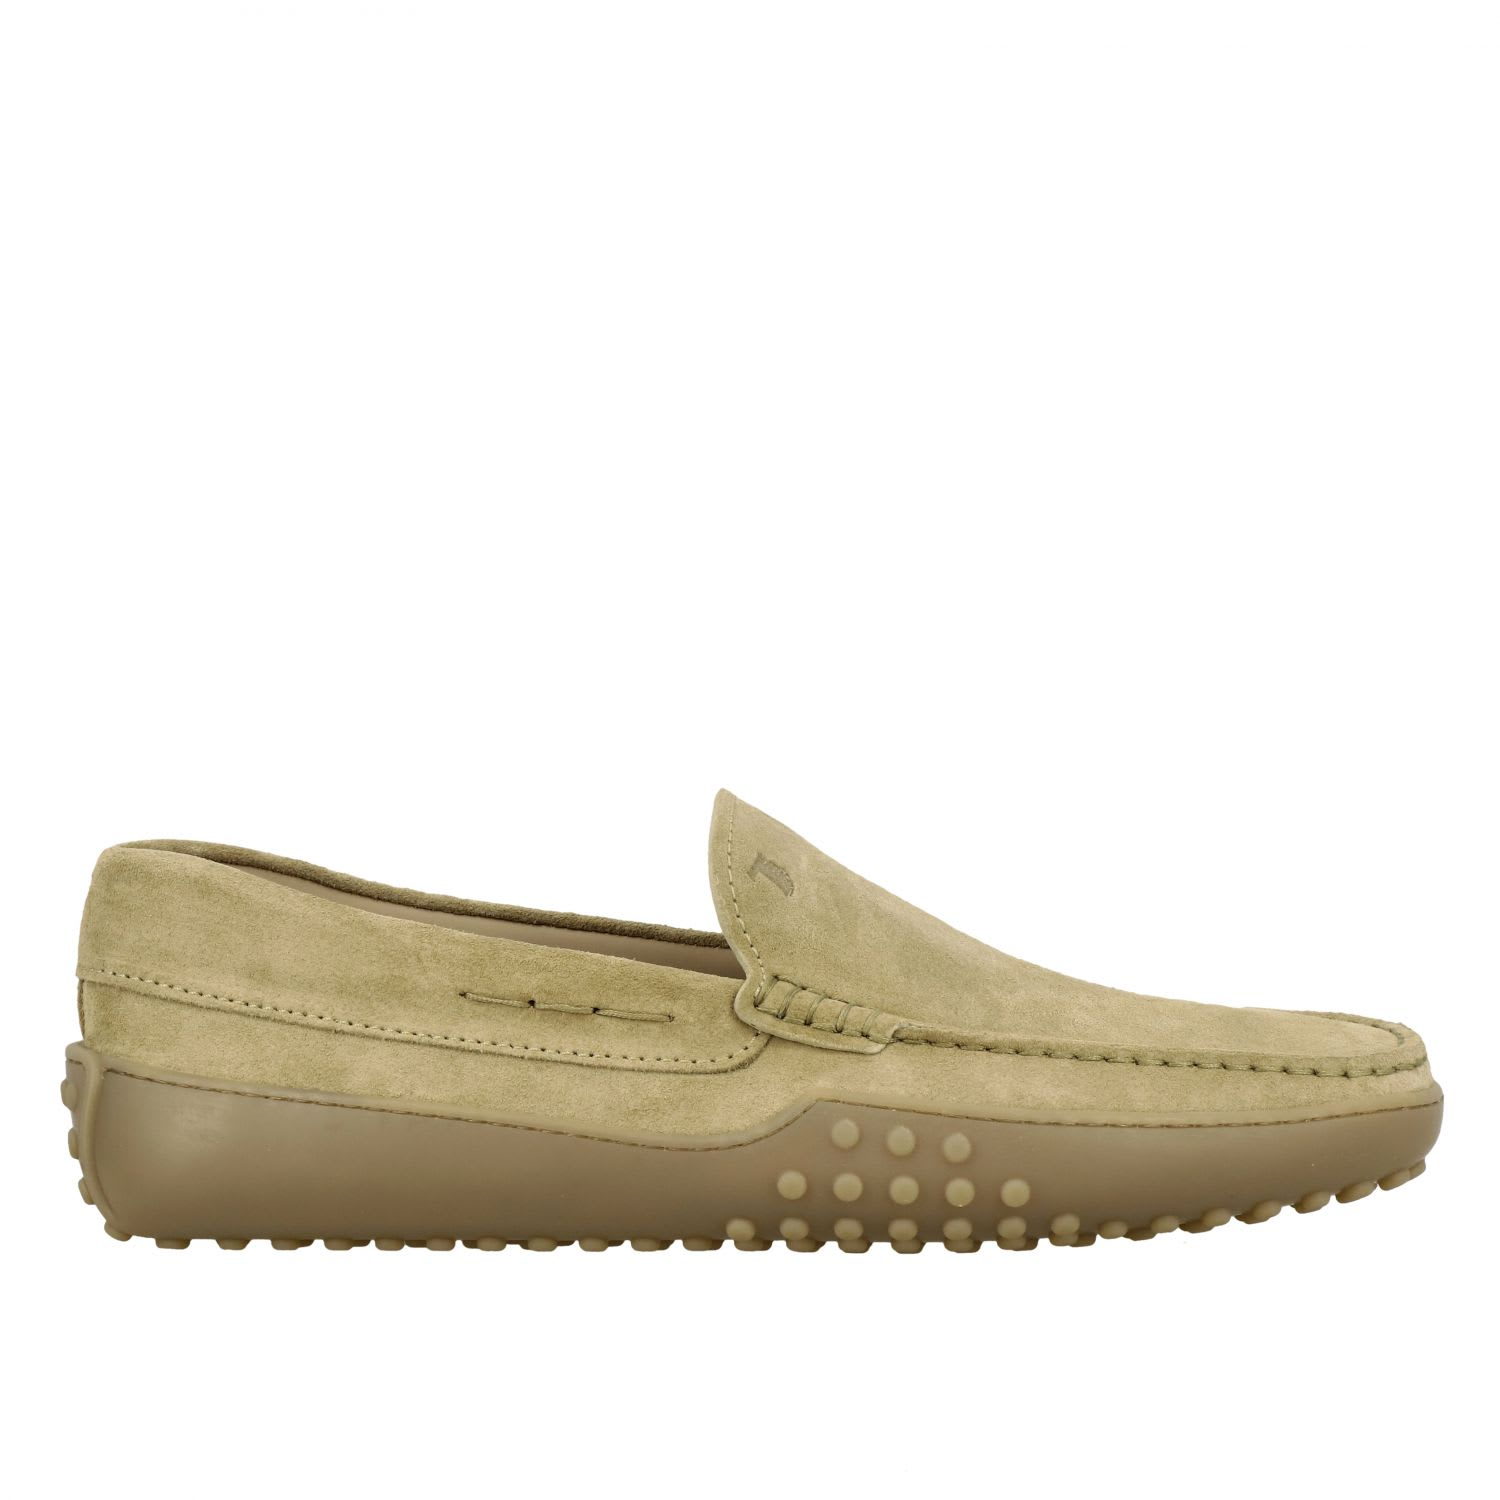 Loafers Tods Gommini Moccasin In SuedeComposition: 100% Calfskin